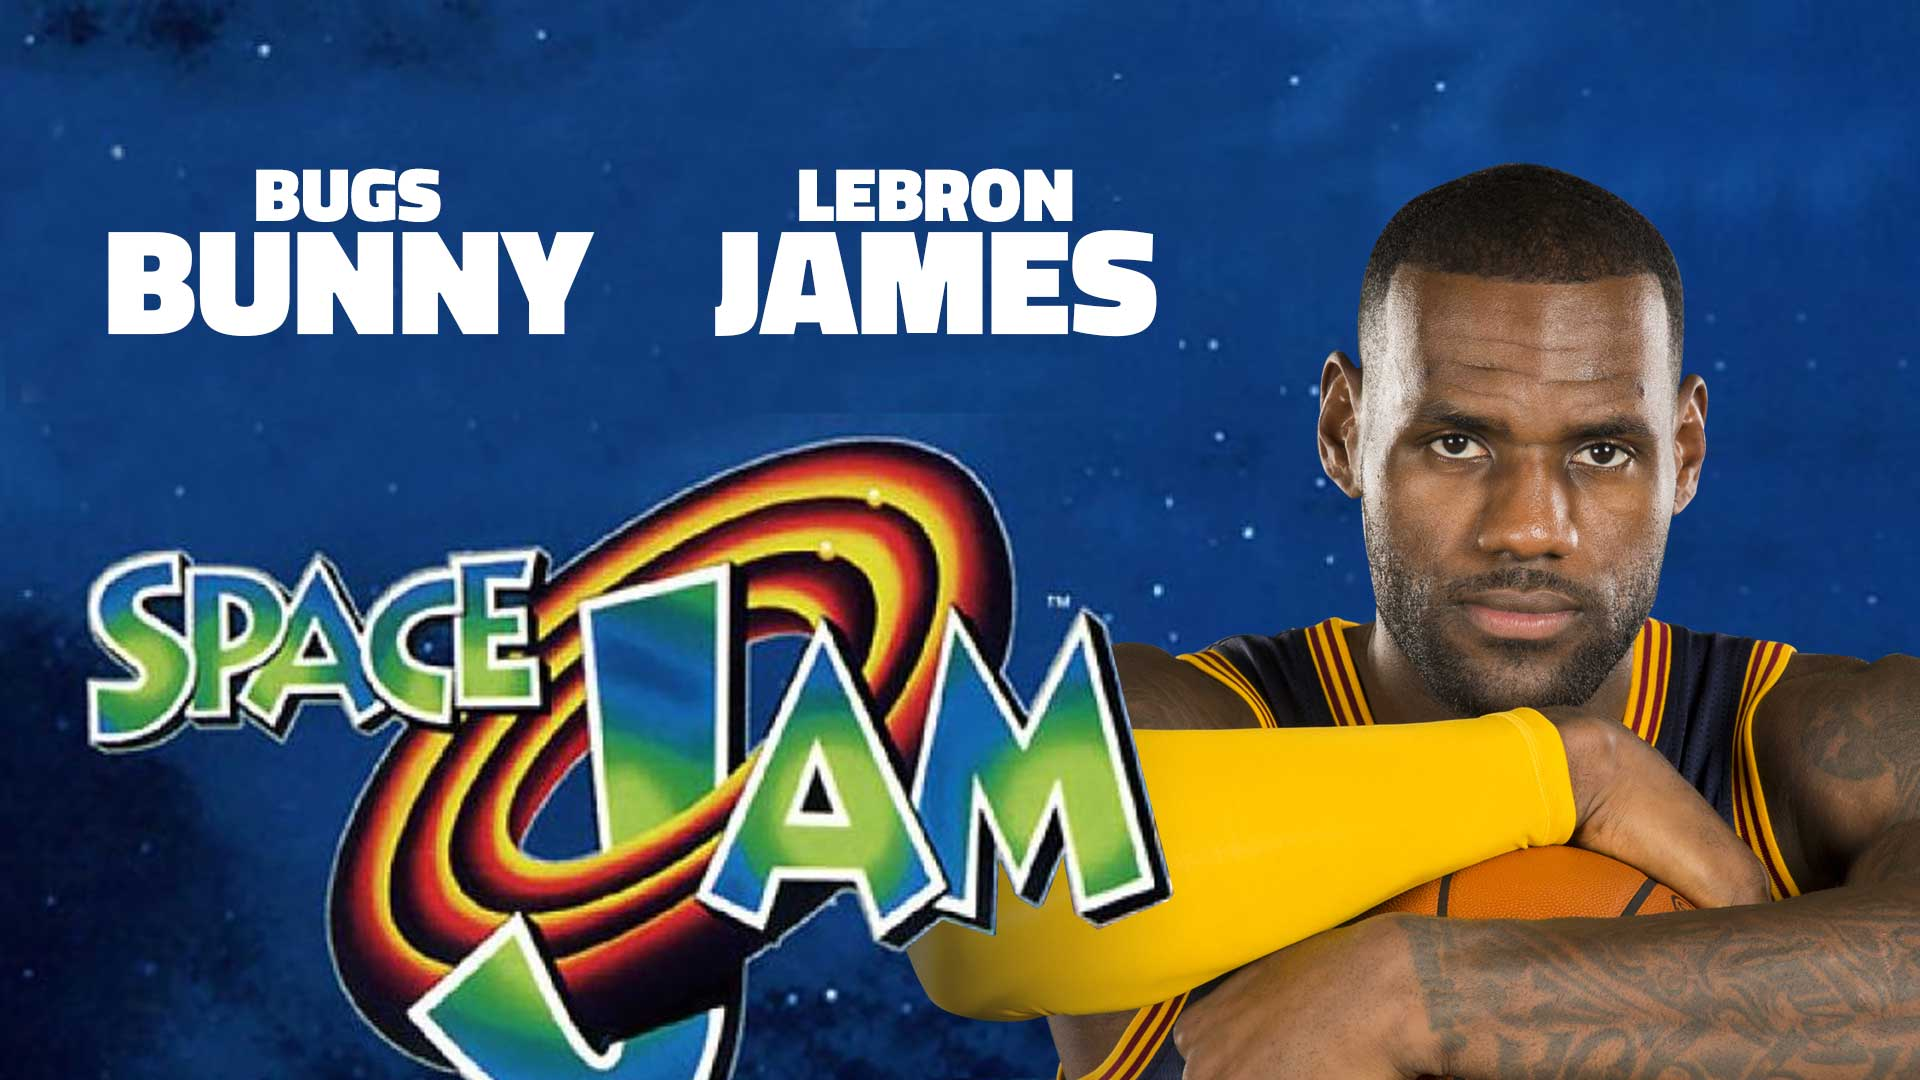 Space Jam 2 is in the works, might star LeBron James